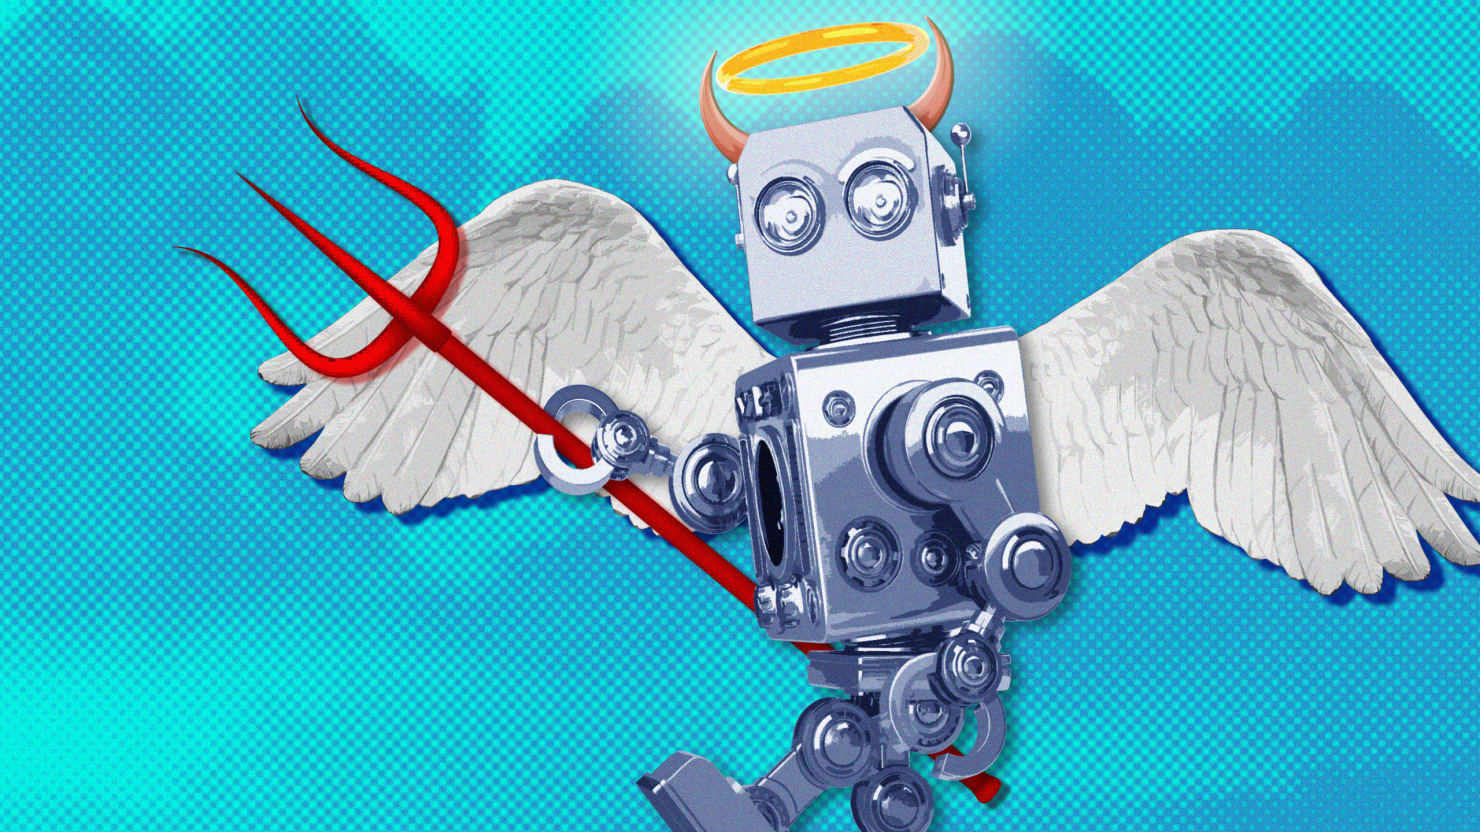 Can Robots Make Moral Decisions? Should They?